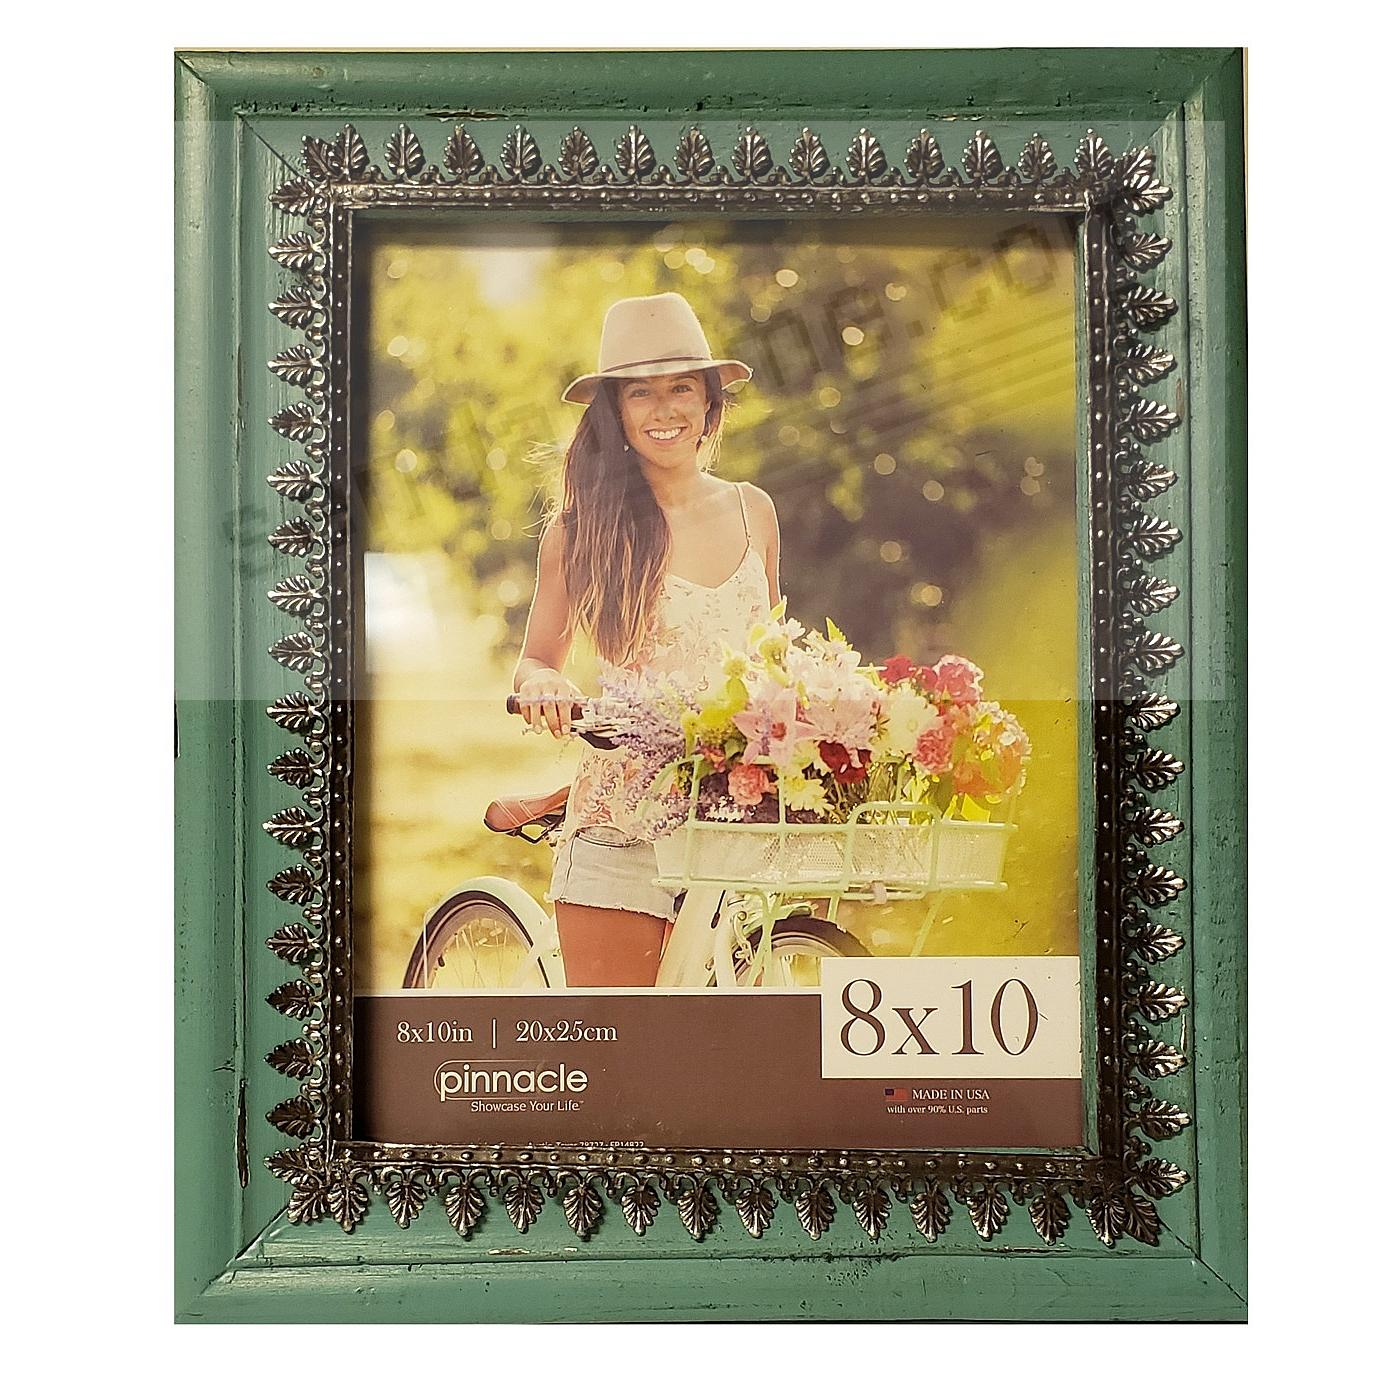 BOHO Turquoise/Black Frame 8x10 by Pinnacle™